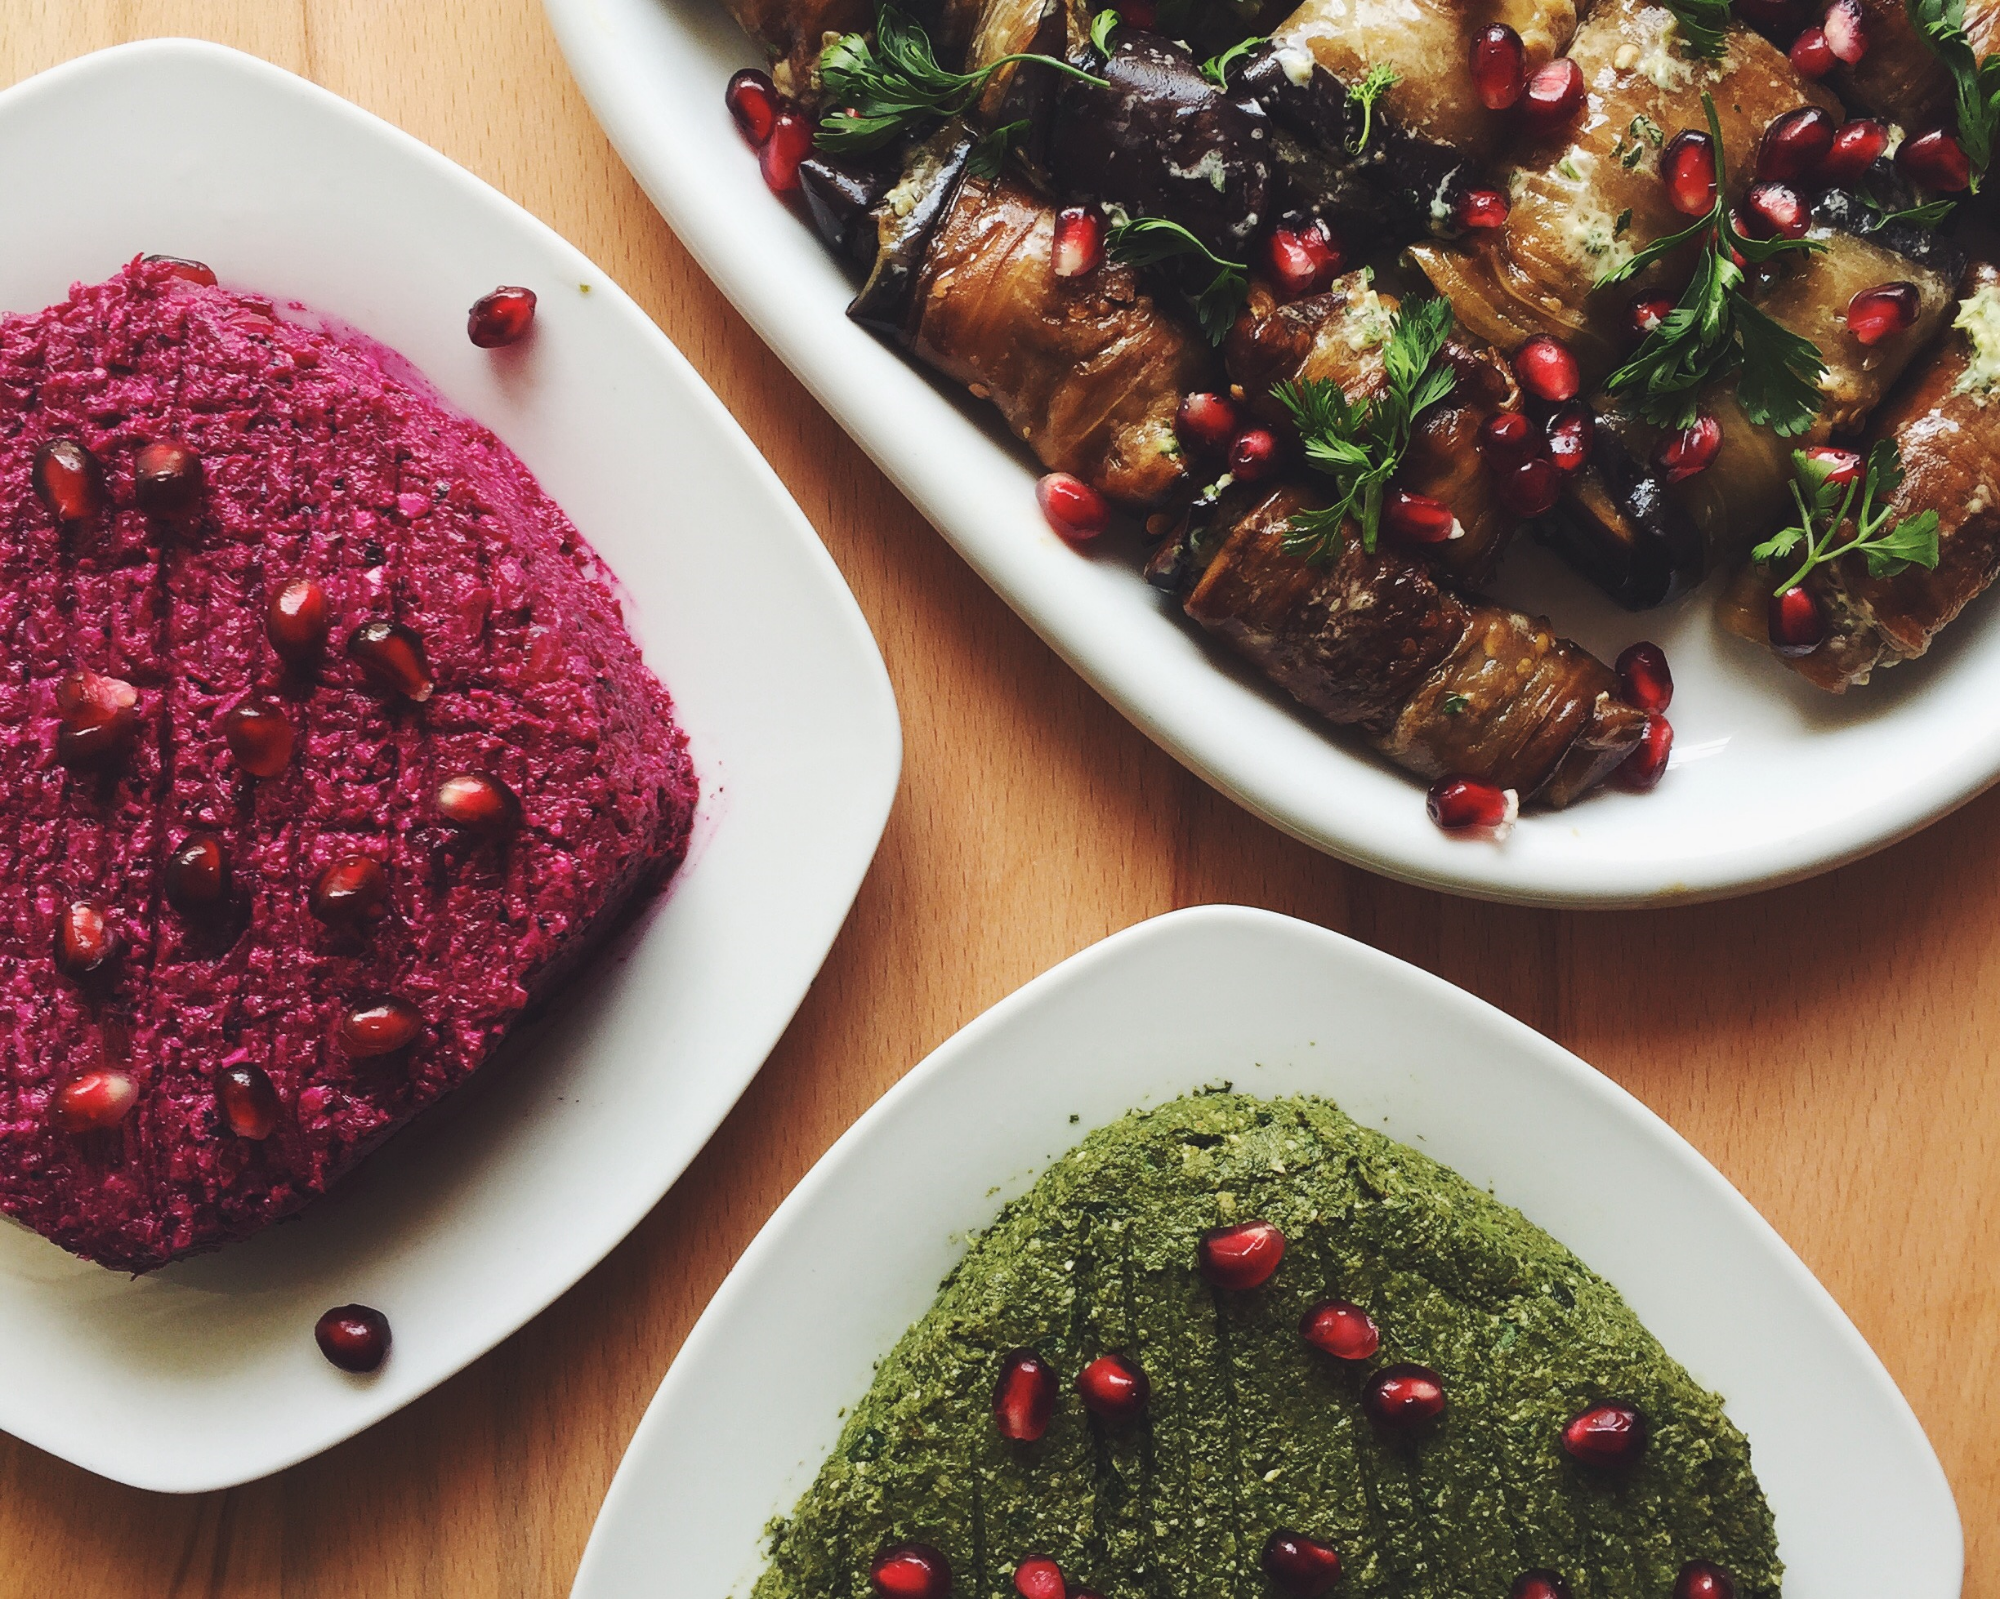 Beet and spinach  pkhali , a type of Georgian vegetable pate, along with  badrijani-nigvzit , fried eggplant rolls with a walnut-garlic filling.